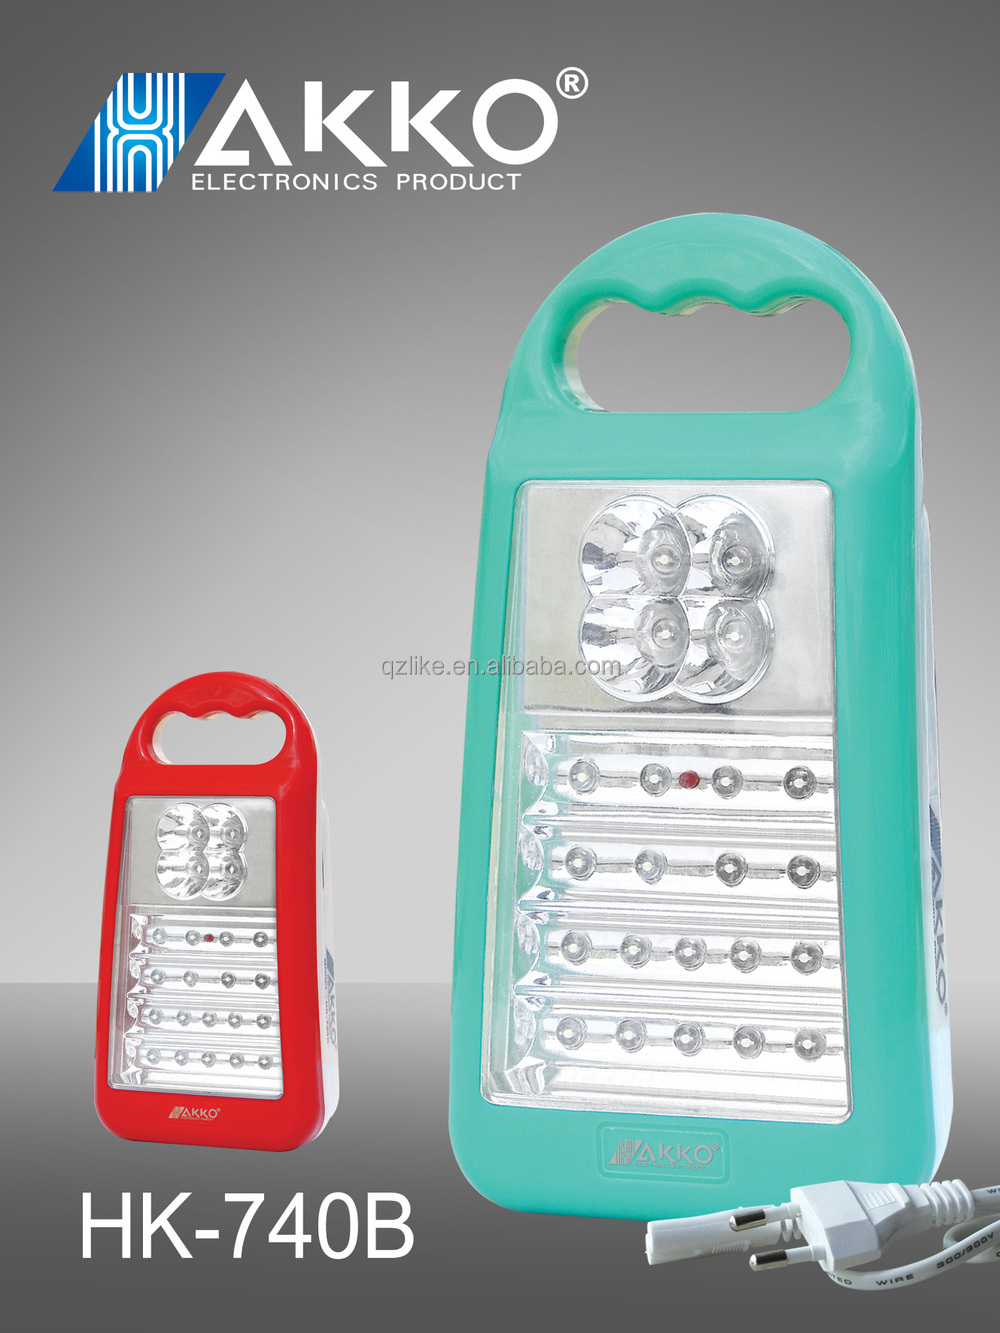 Akko Led Emergency Lamp, Akko Led Emergency Lamp Suppliers and ... for Led Rechargeable Emergency Light With Remote  268zmd